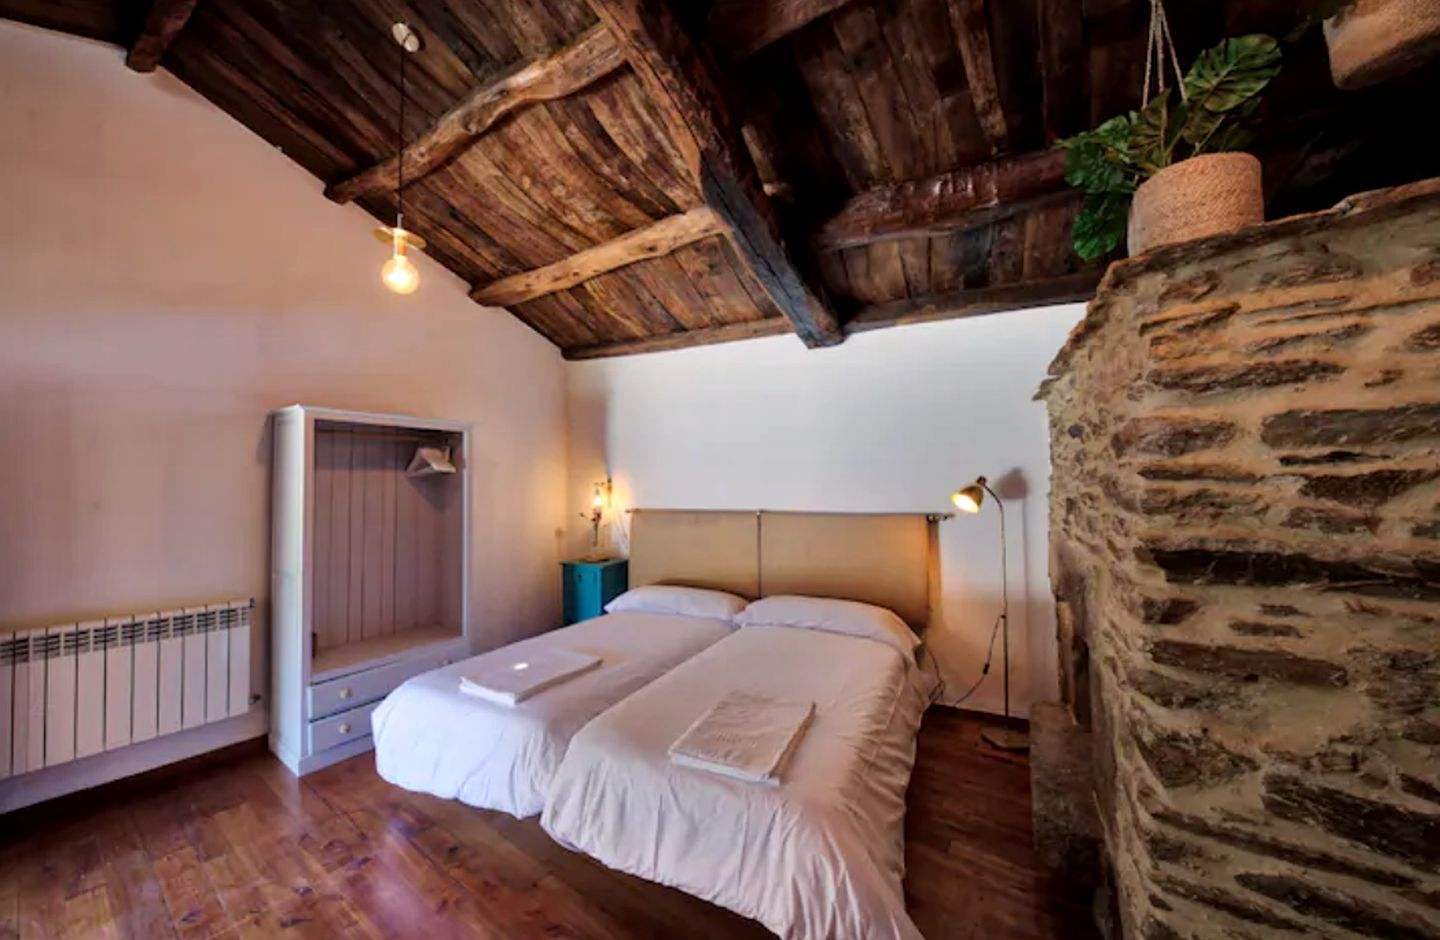 This room rental is ideal for Galicia holidays